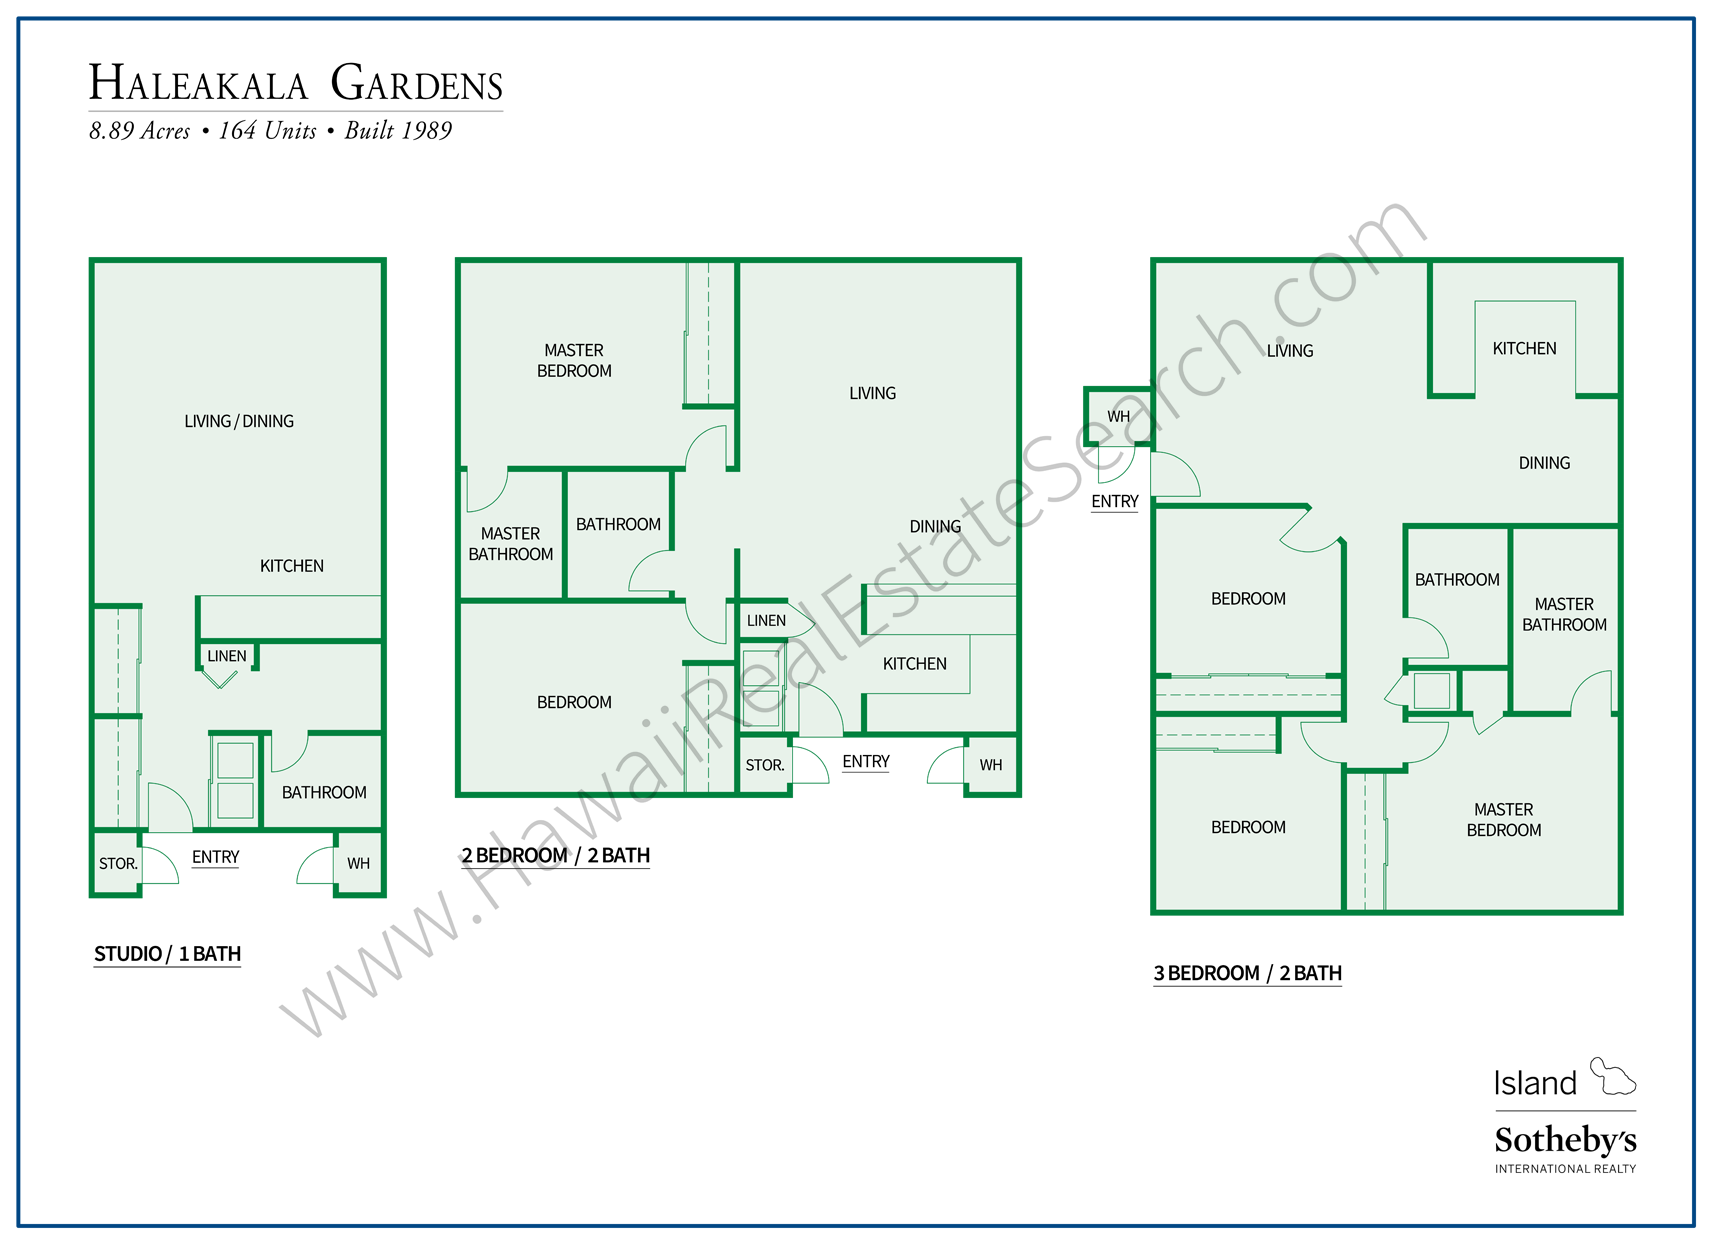 haleakala gardens floor plans